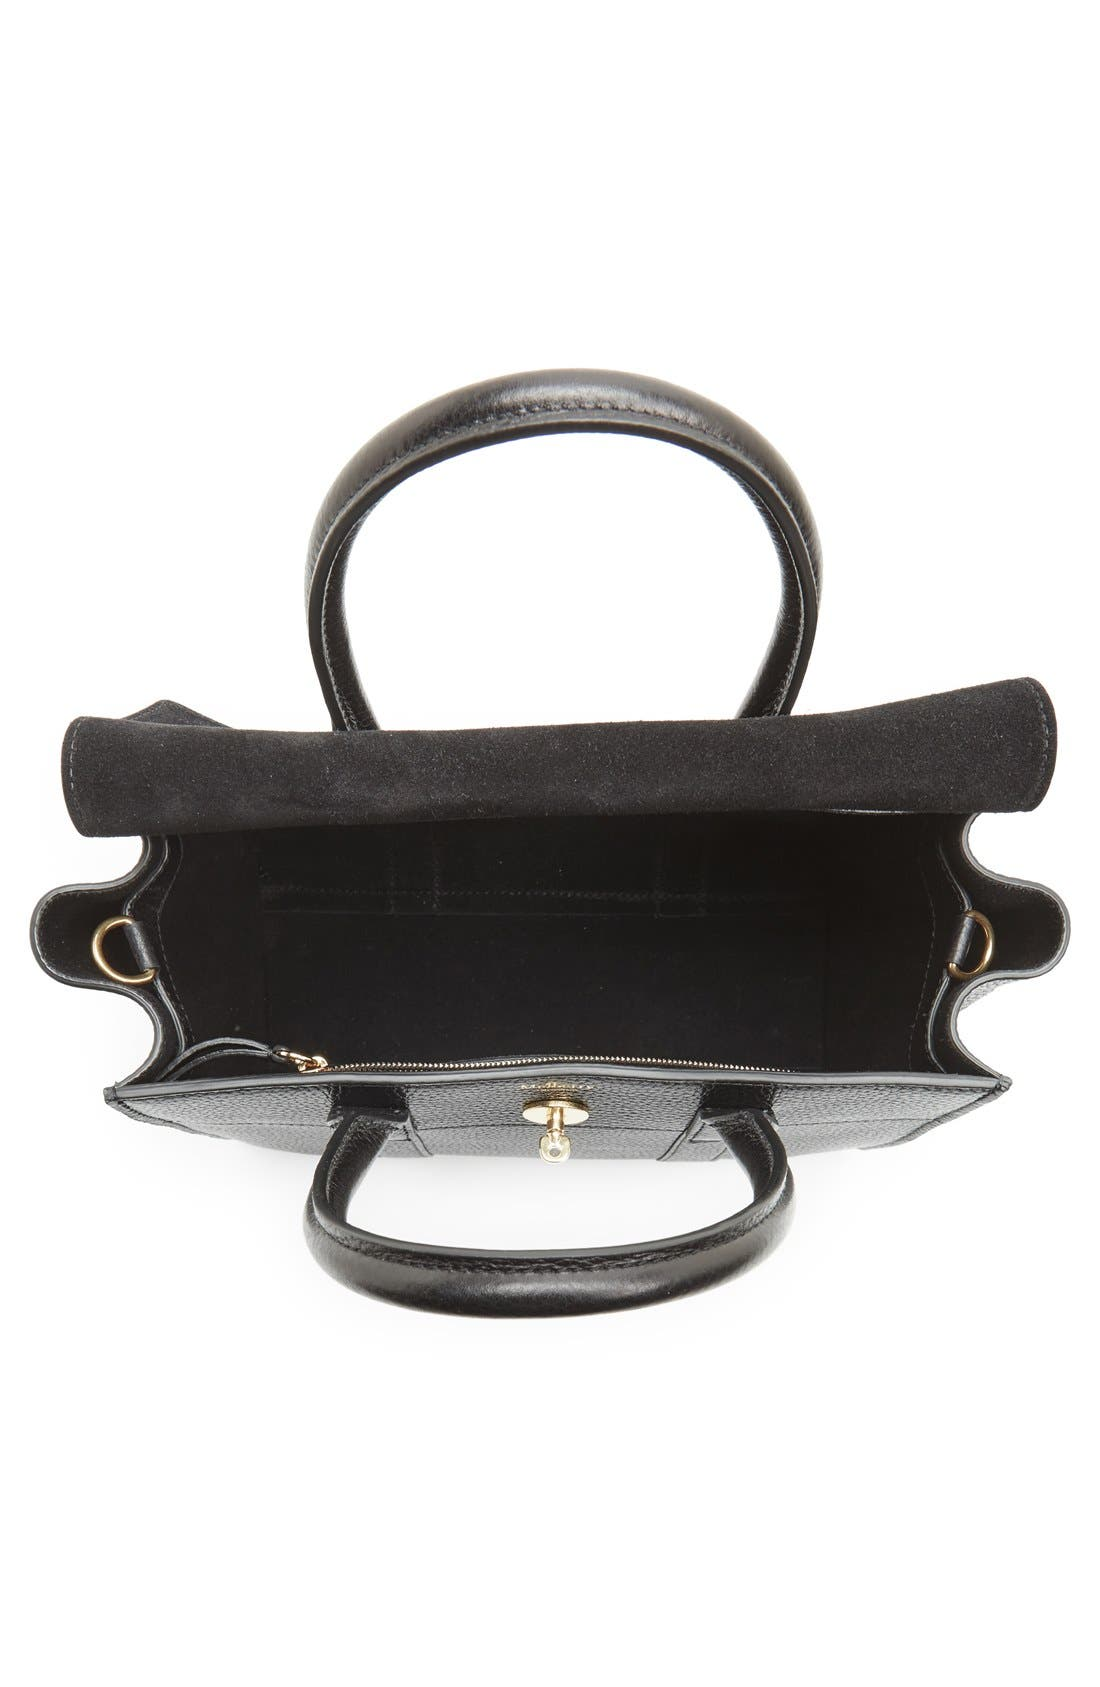 'Small Bayswater' Leather Satchel,                             Alternate thumbnail 4, color,                             001